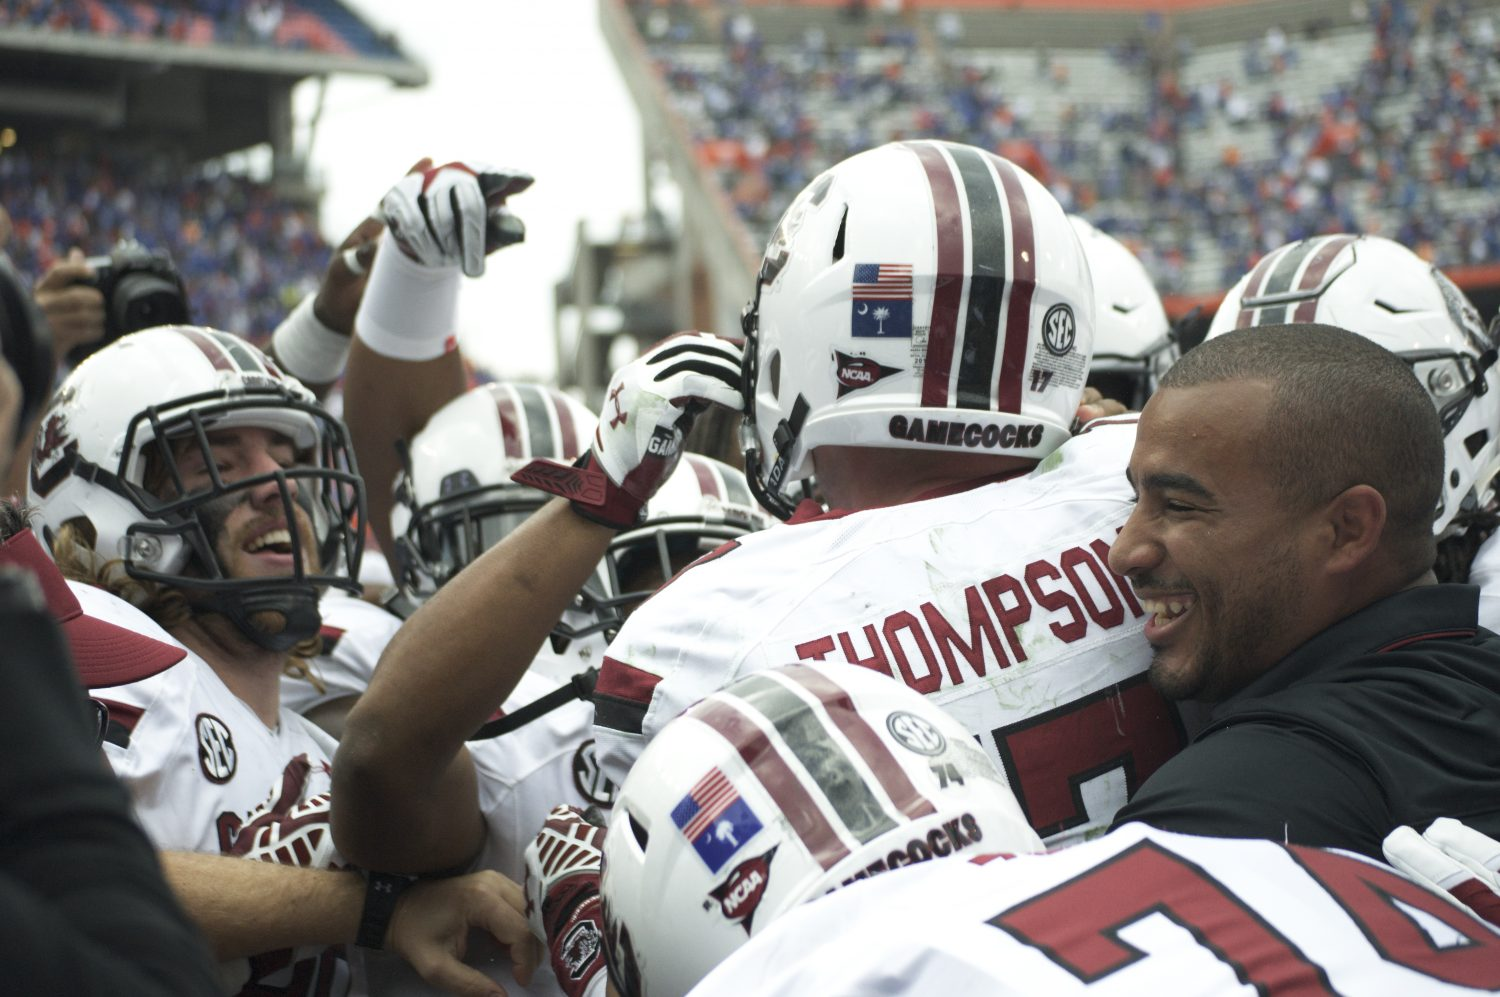 The Gamecocks rush into the endzone to celebrate with their quarterback.